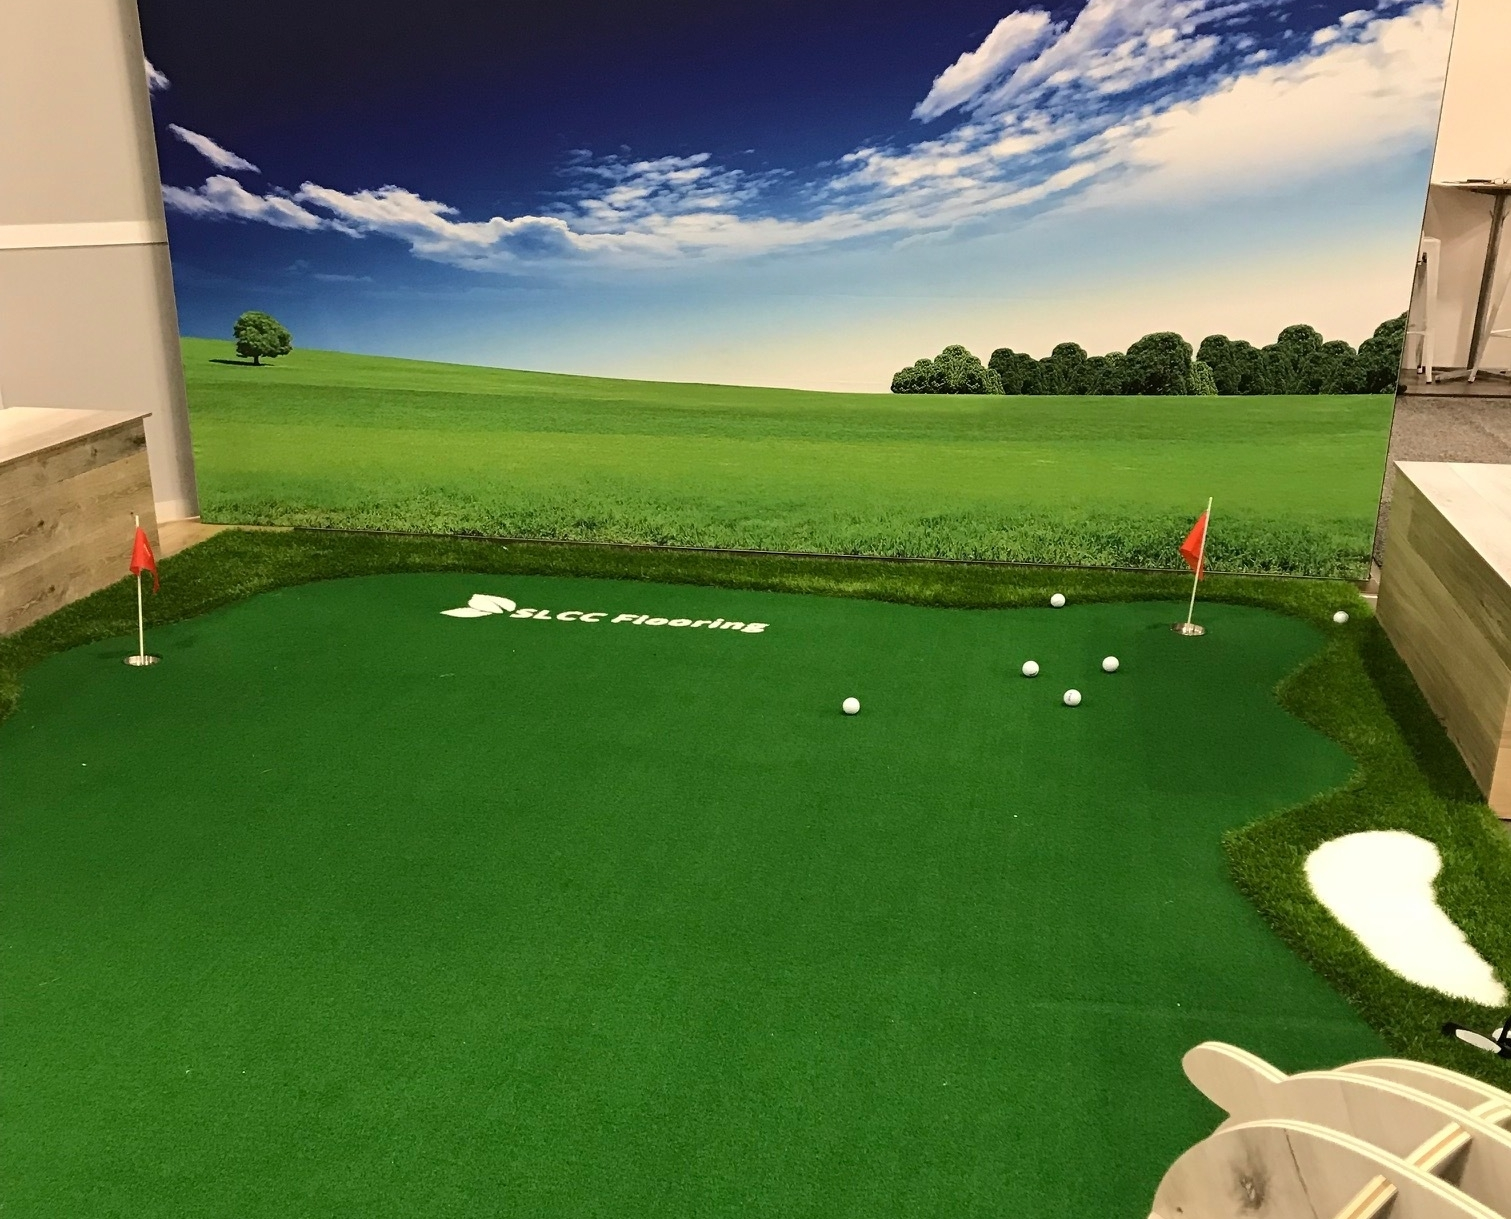 Artificial turf is a growing category and who wouldn't love playing around on this for a little while. We saw pigs playing in the mud on carpet, dogs trying to scratch the newest resilient flooring and real waterfalls showing off the true waterproof flooring. -